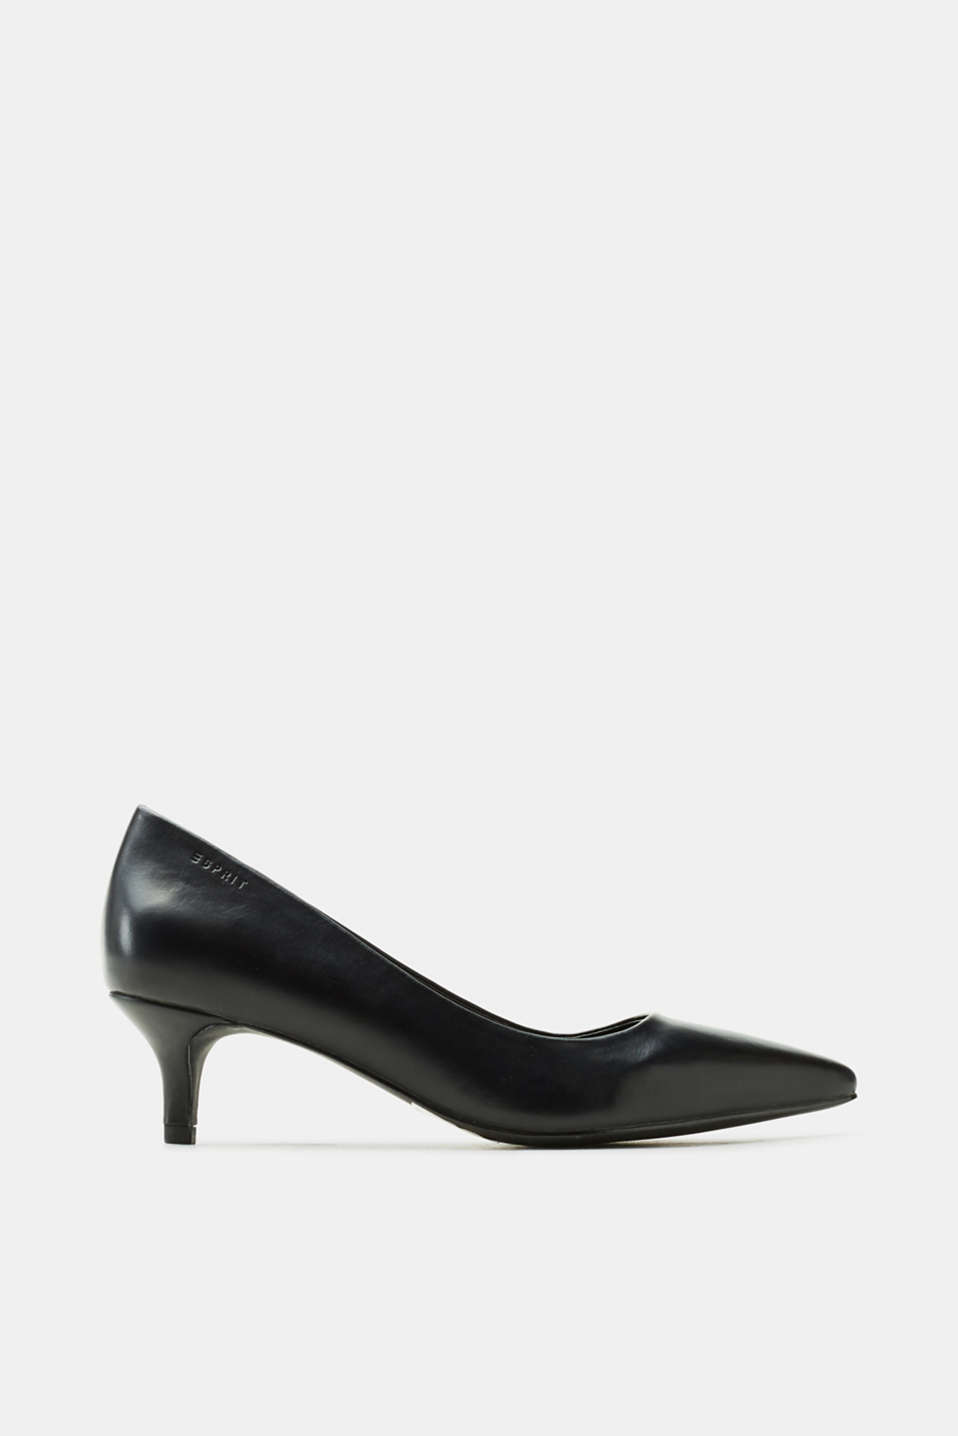 Esprit - Pumps med kitten-heel, i læderlook